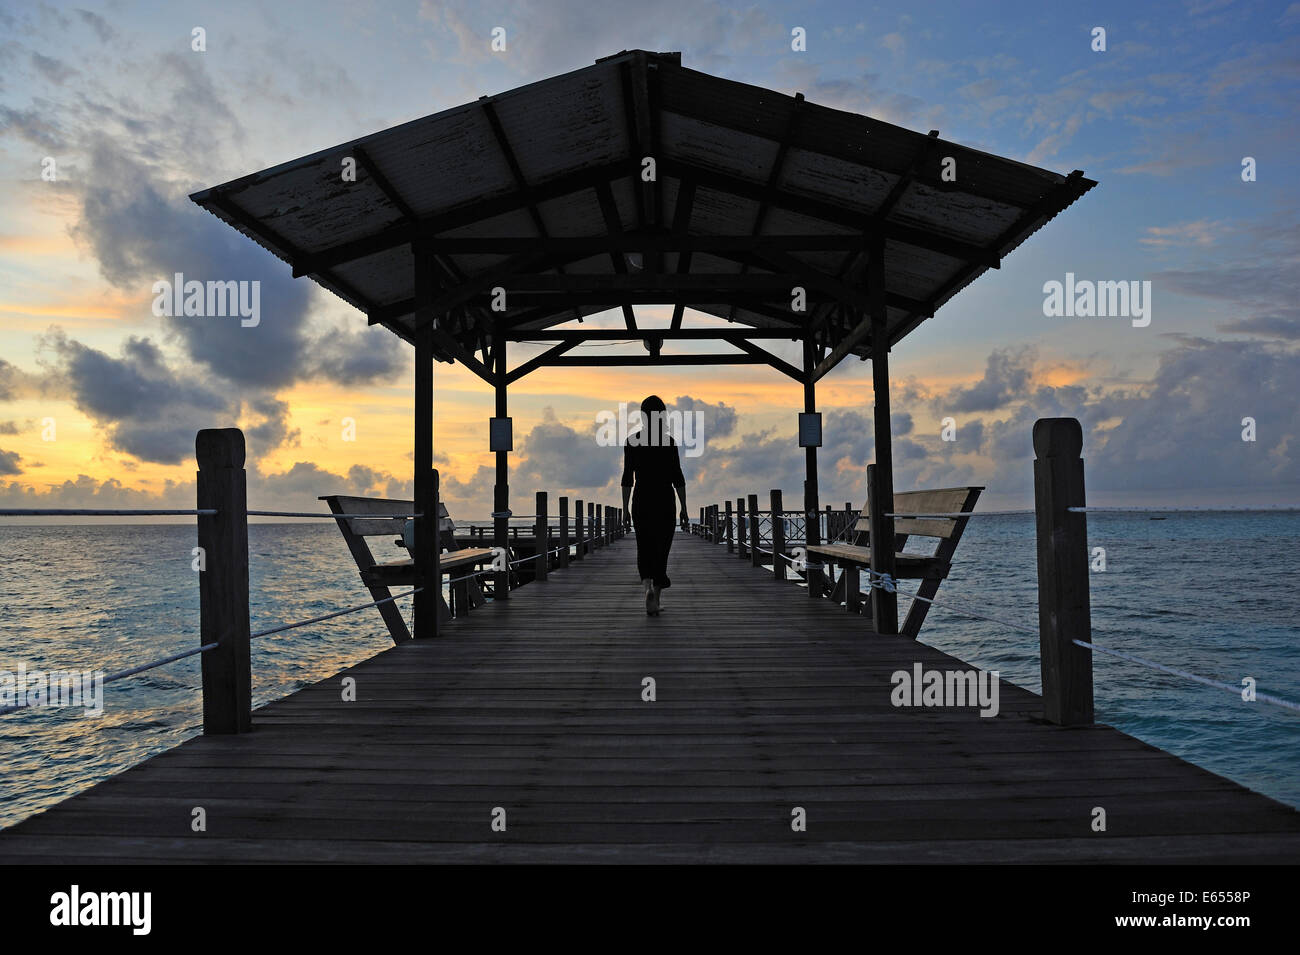 Woman walking on wooden jetty at sunrise, Island of Borneo, Sabah State, Malaysia, Southeast Asia - Stock Image